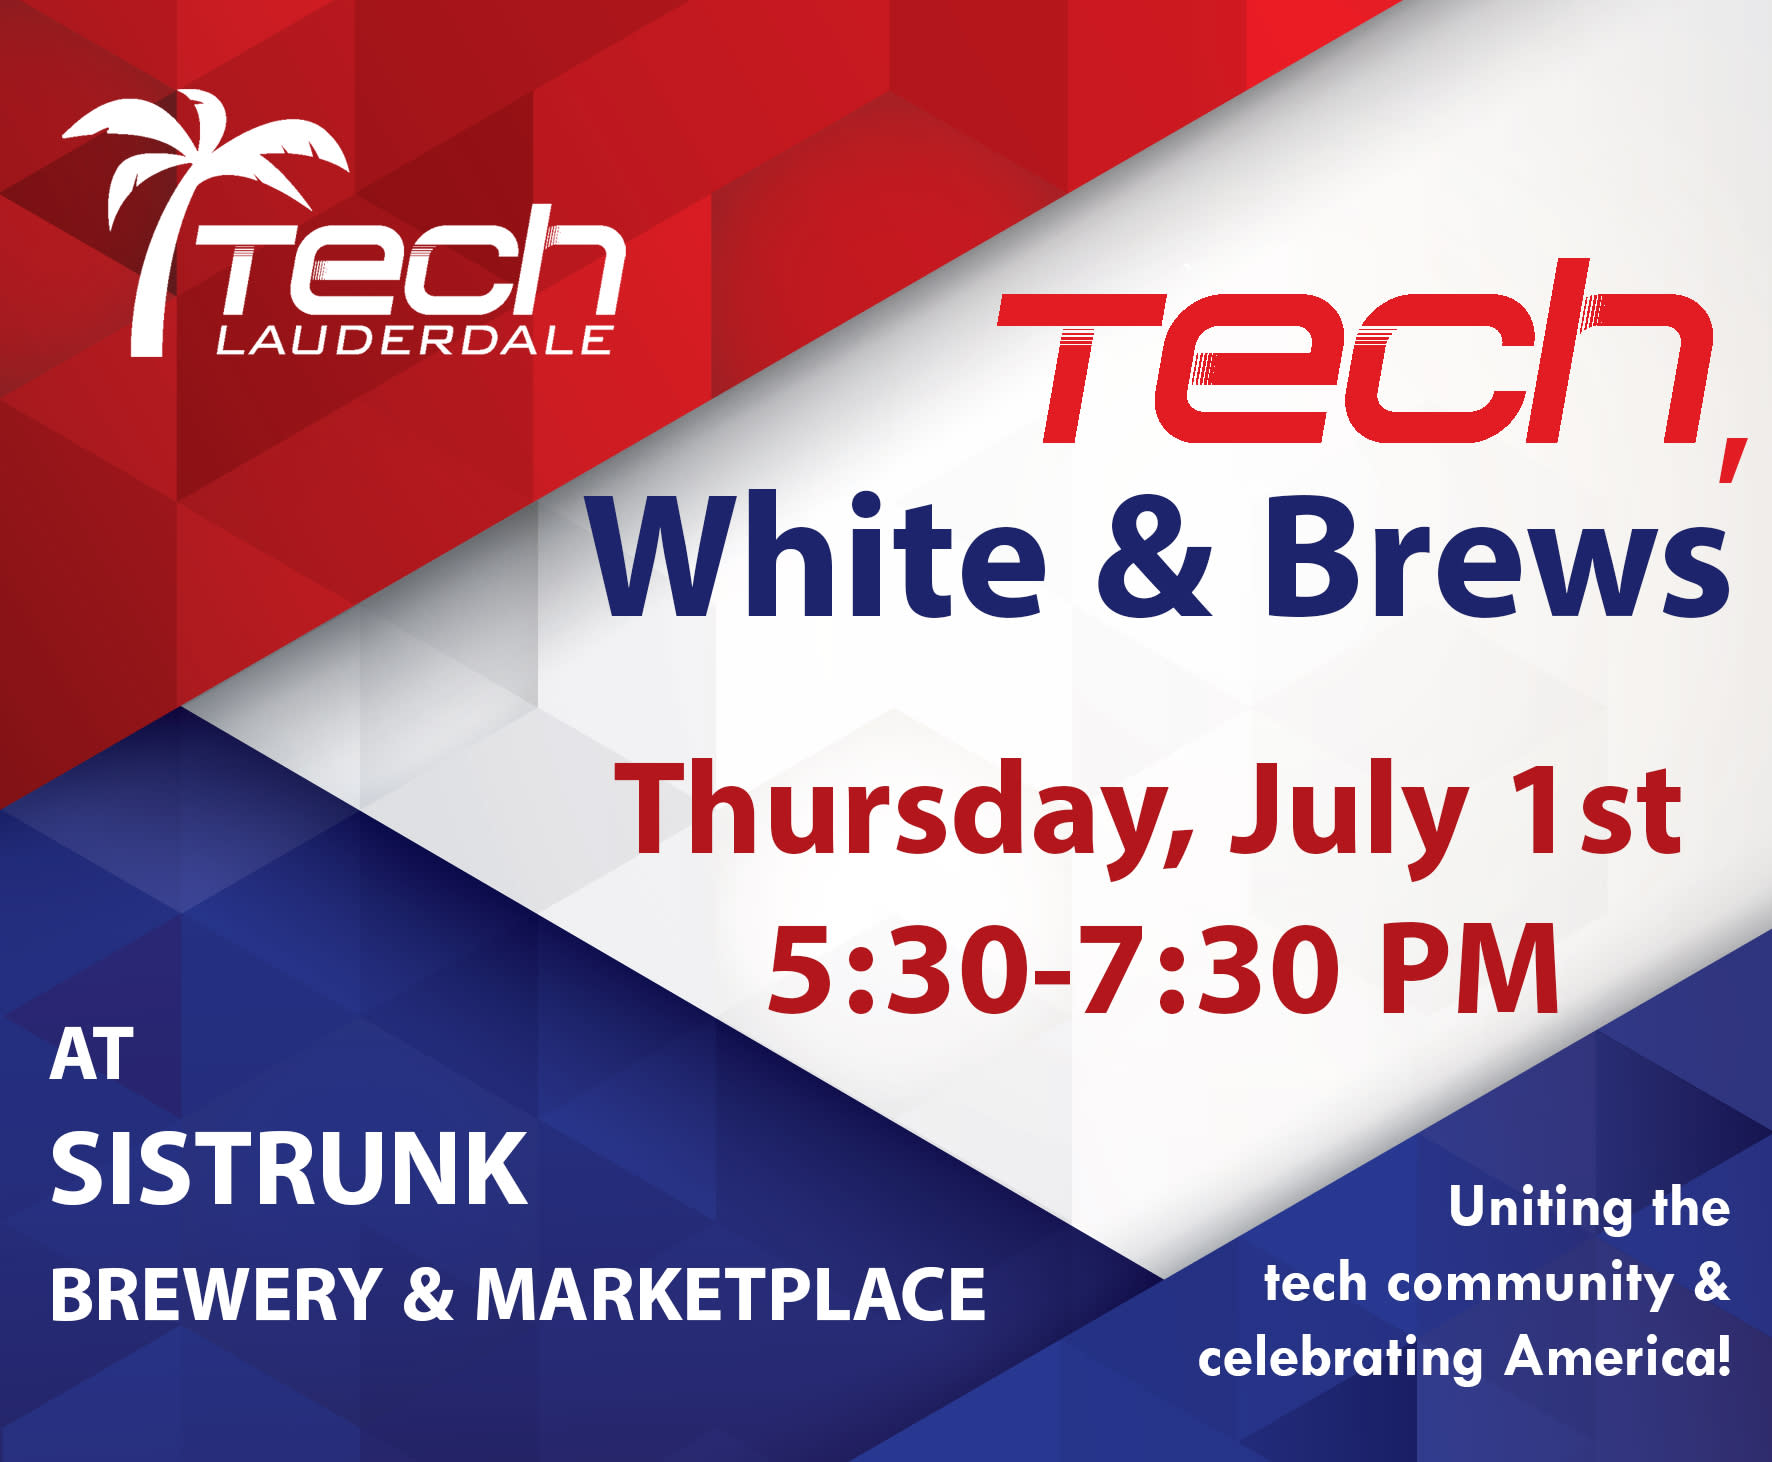 Tech, White & Brews Event at Sistrunk Marketplace & Brewery